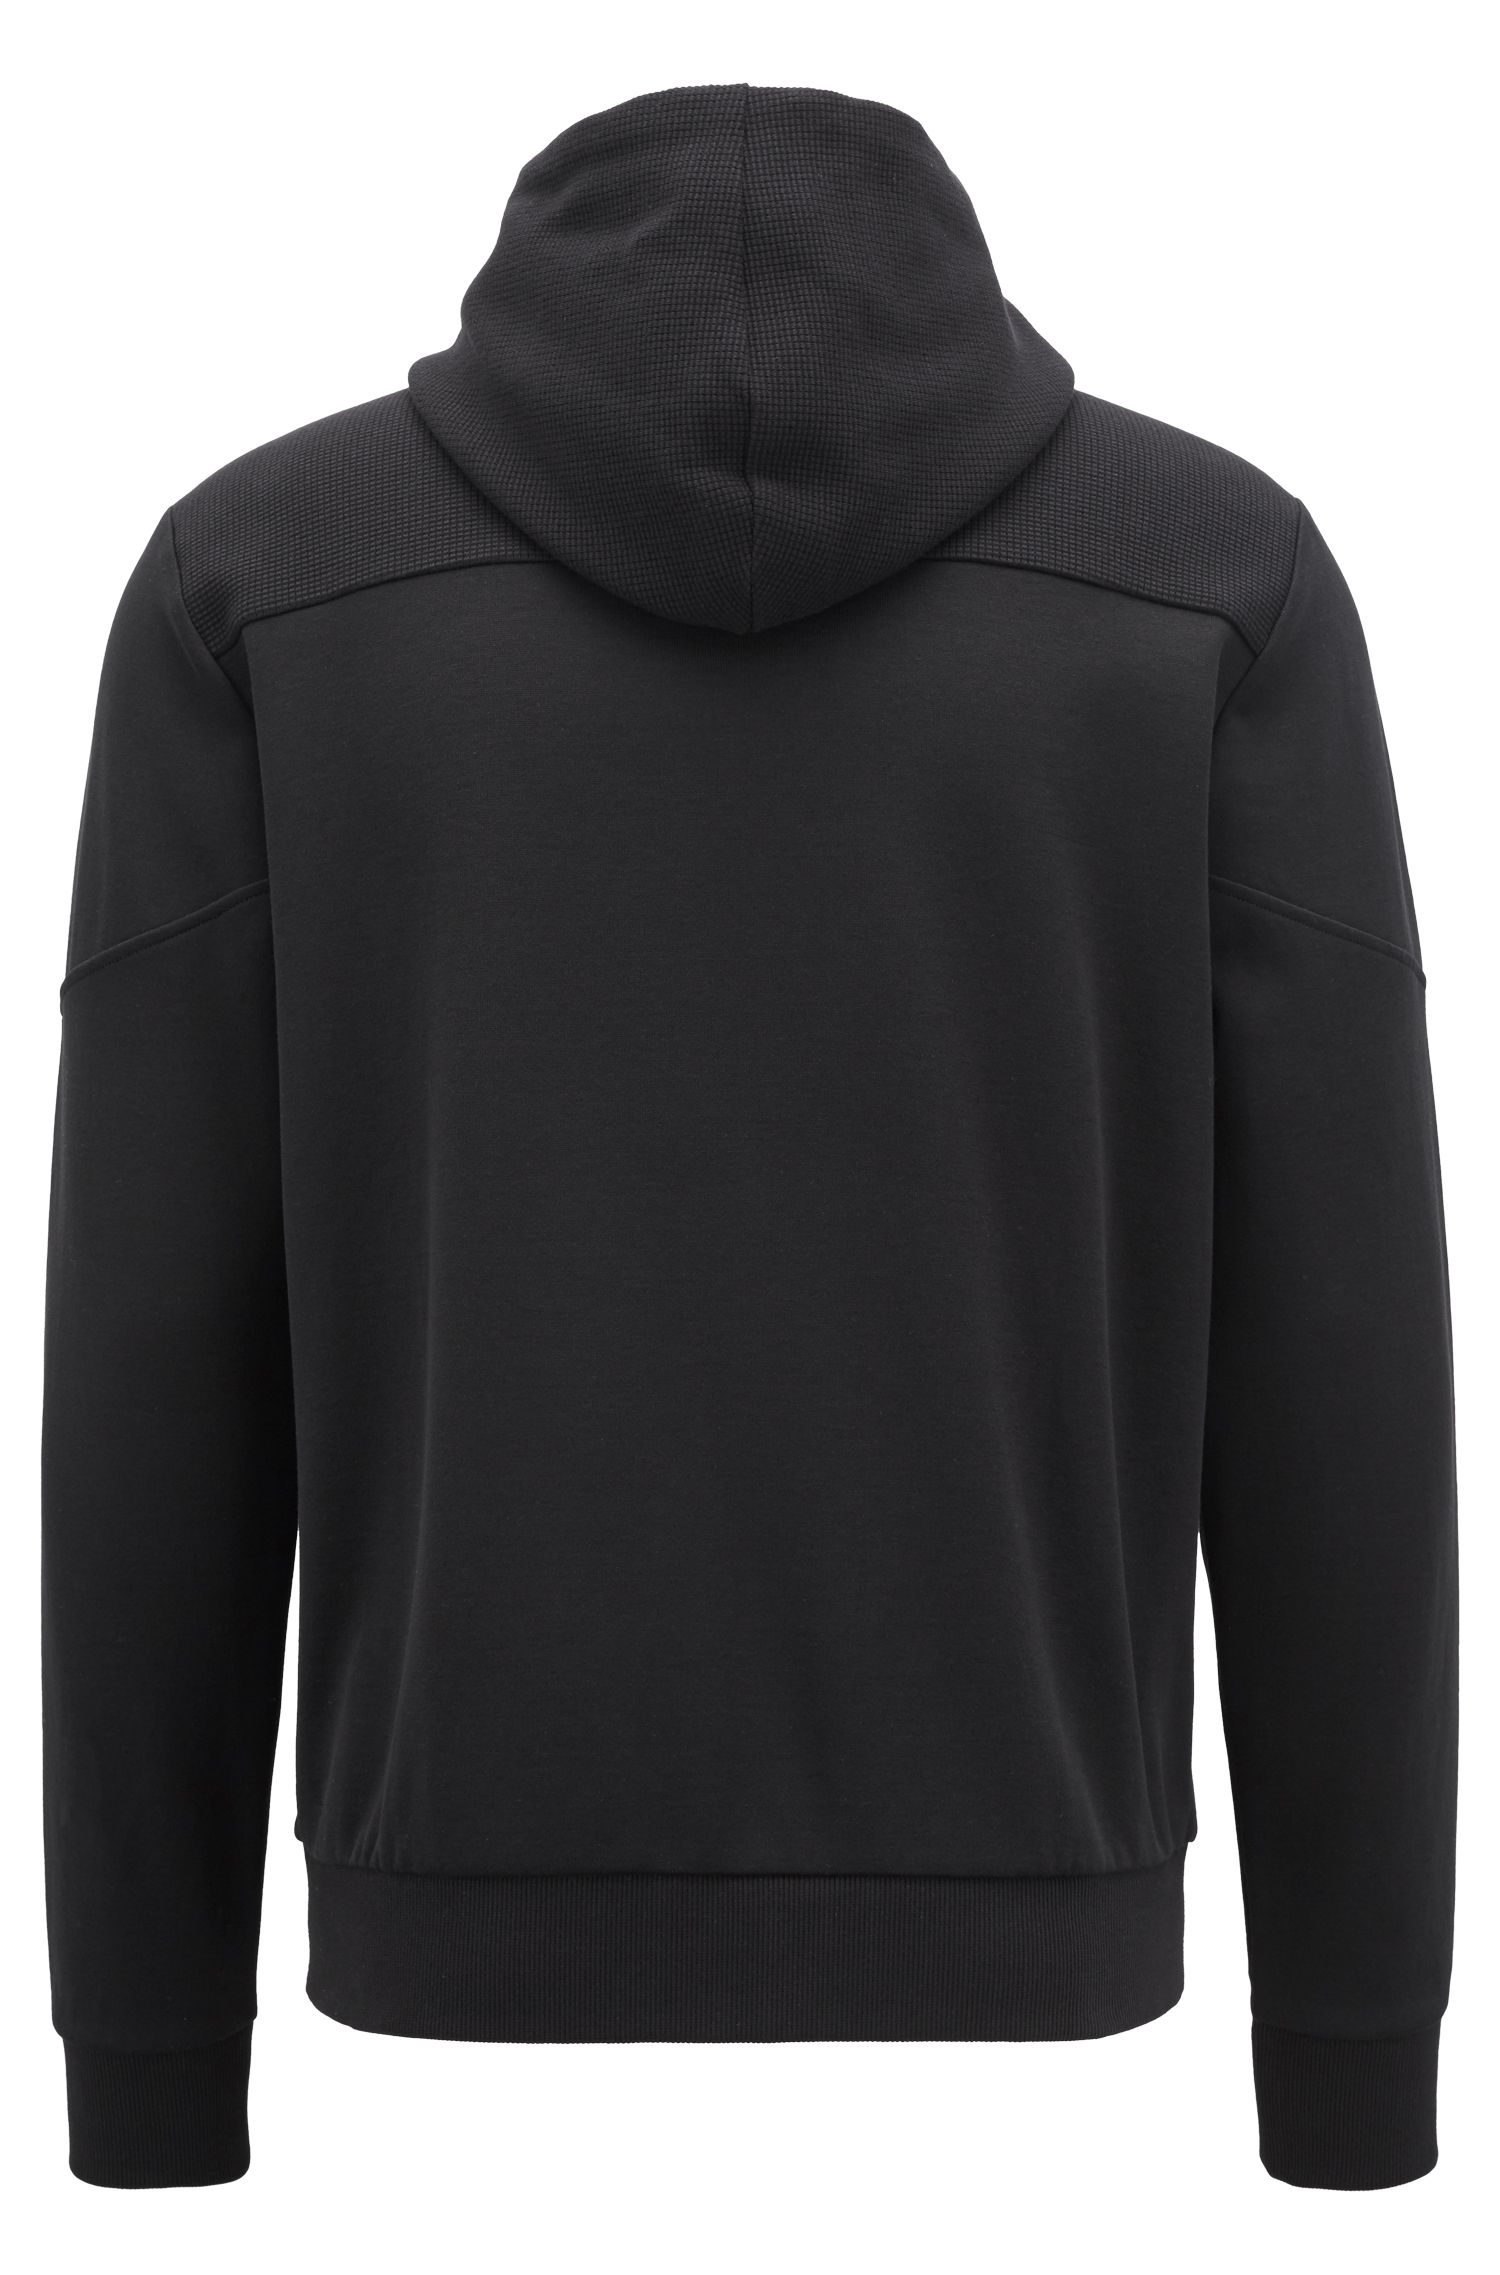 Hooded sweatshirt with contrast zip and logo detail, Black